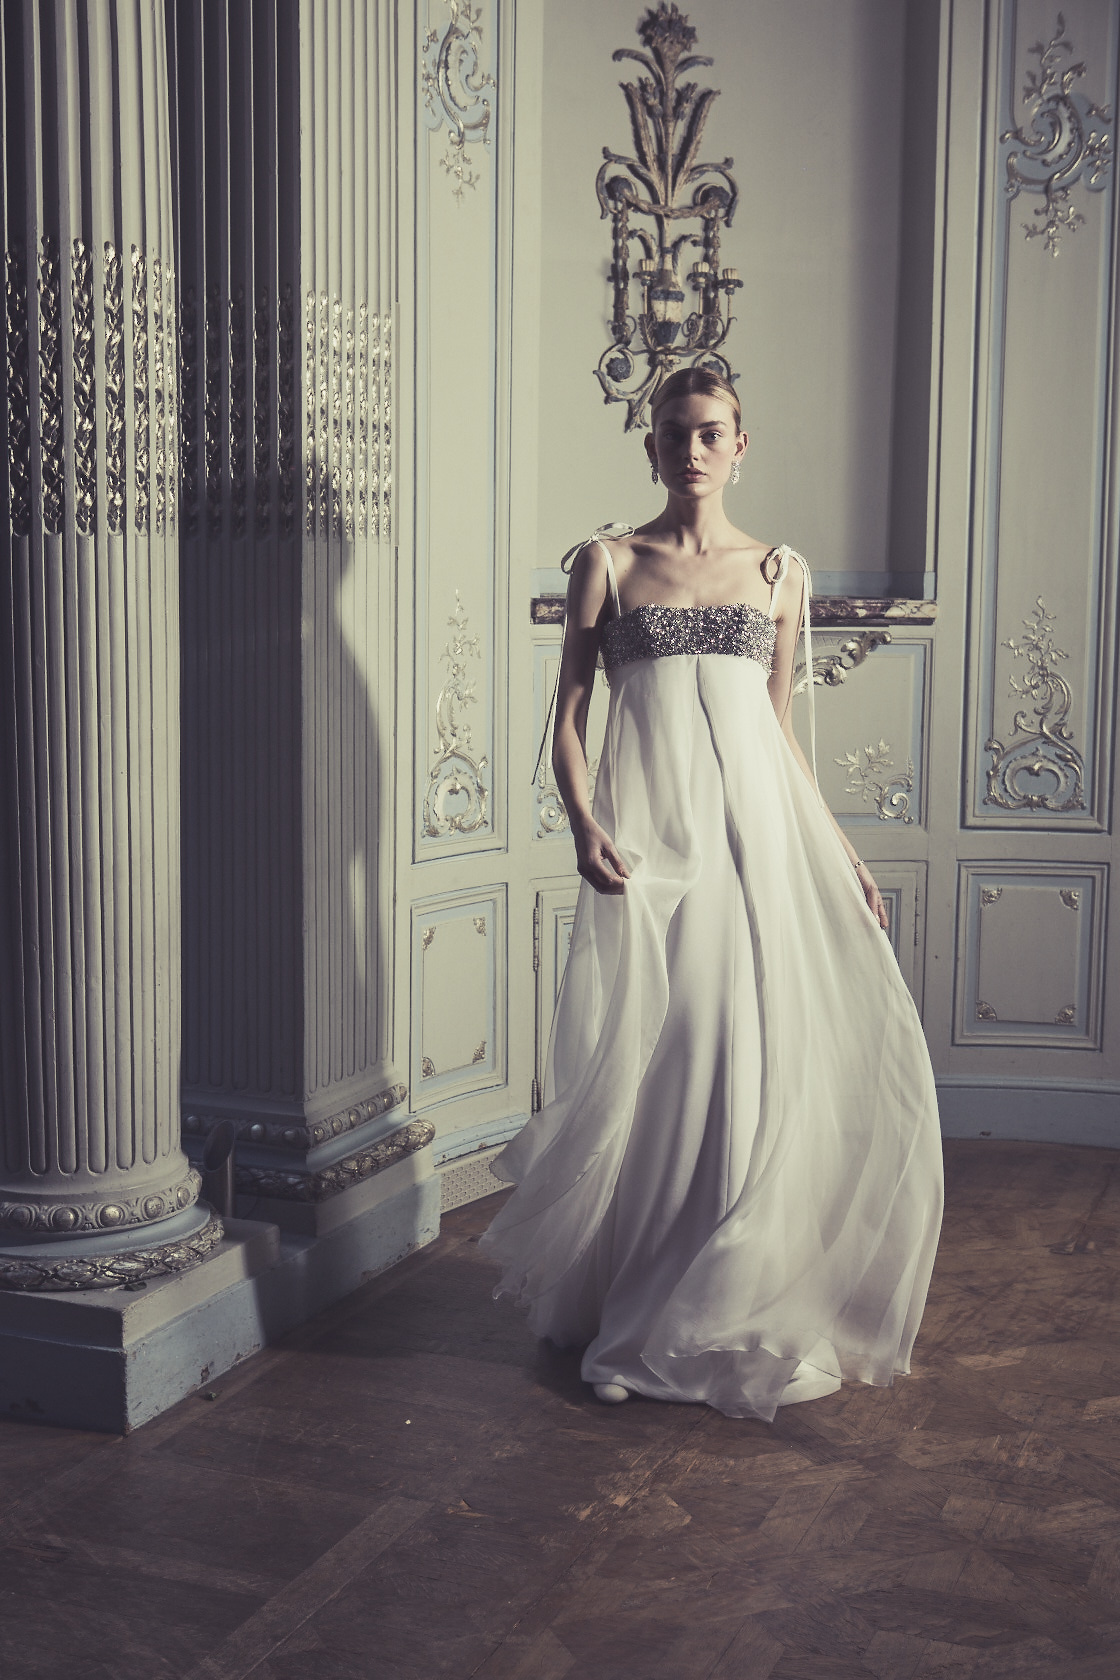 Phillipa Lepley Couture Wedding Dress London UK Designer Bespoke Couture Claudette Rocks Chiffon Empire Line Bodice Encrusted Vintage Diamante Bow Straps